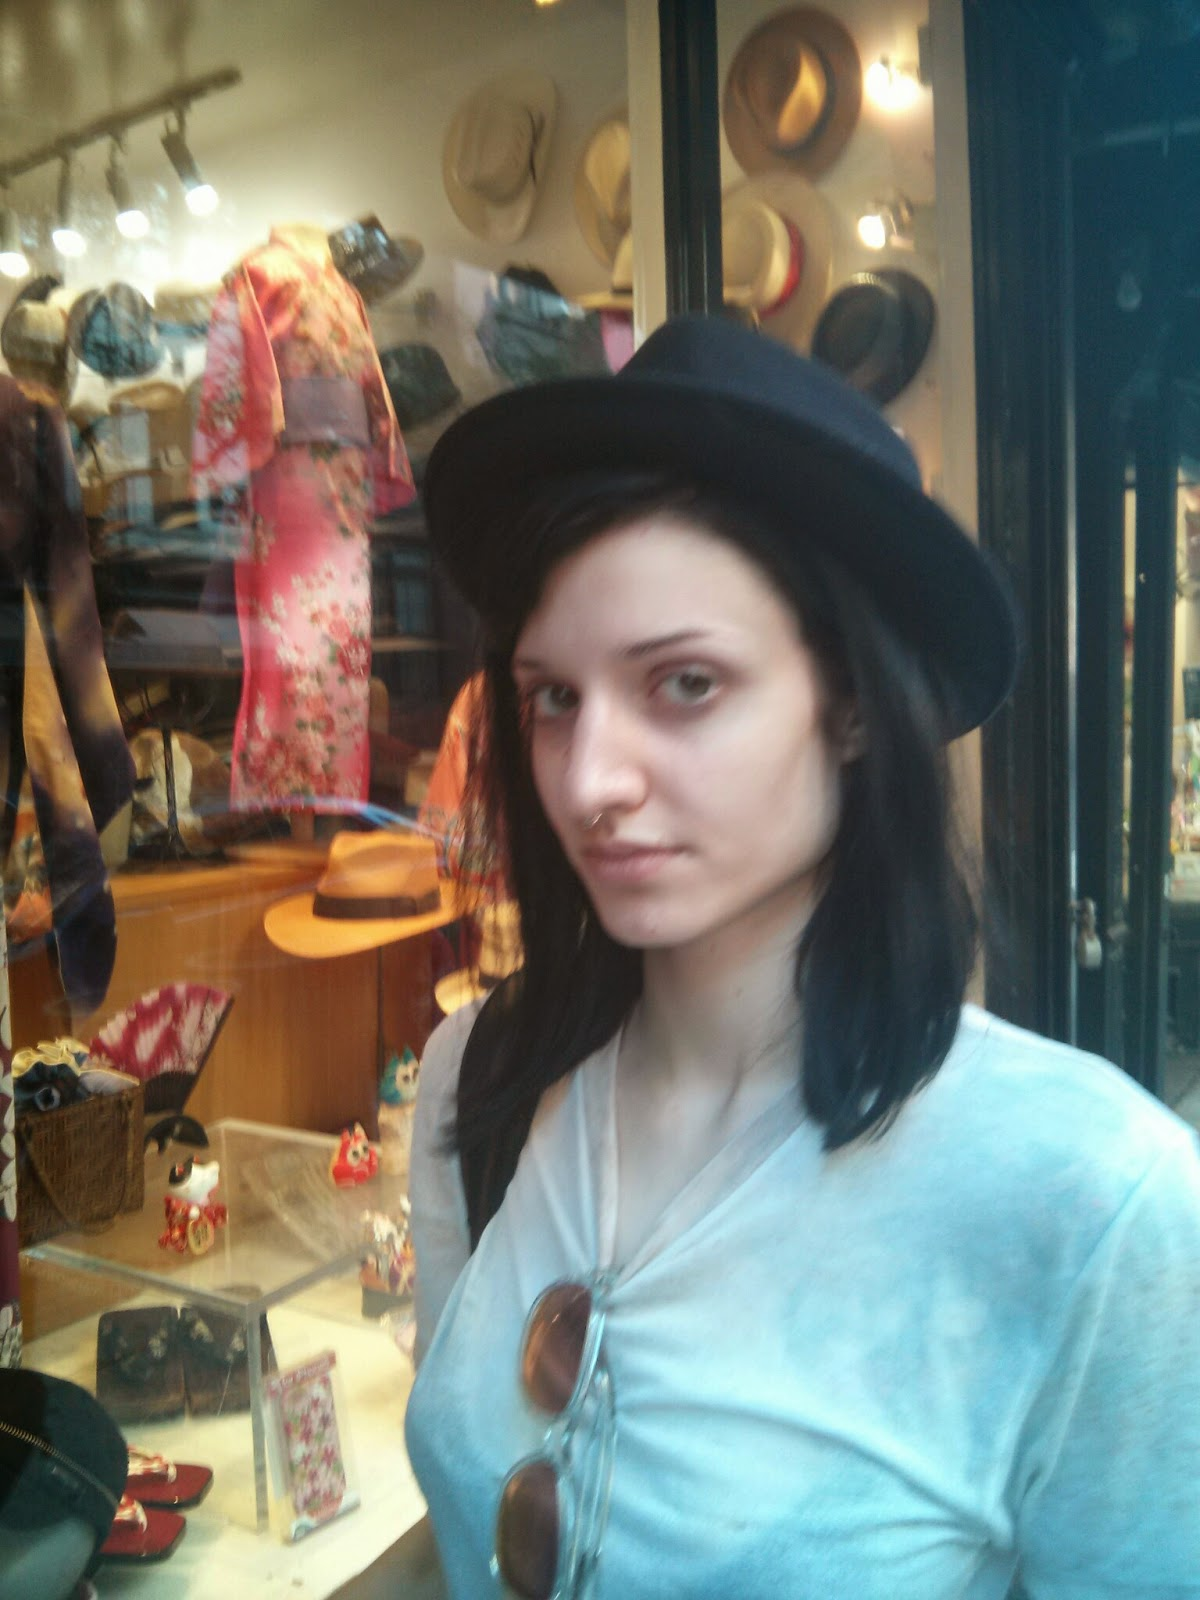 Stetson Hat on Young Lady